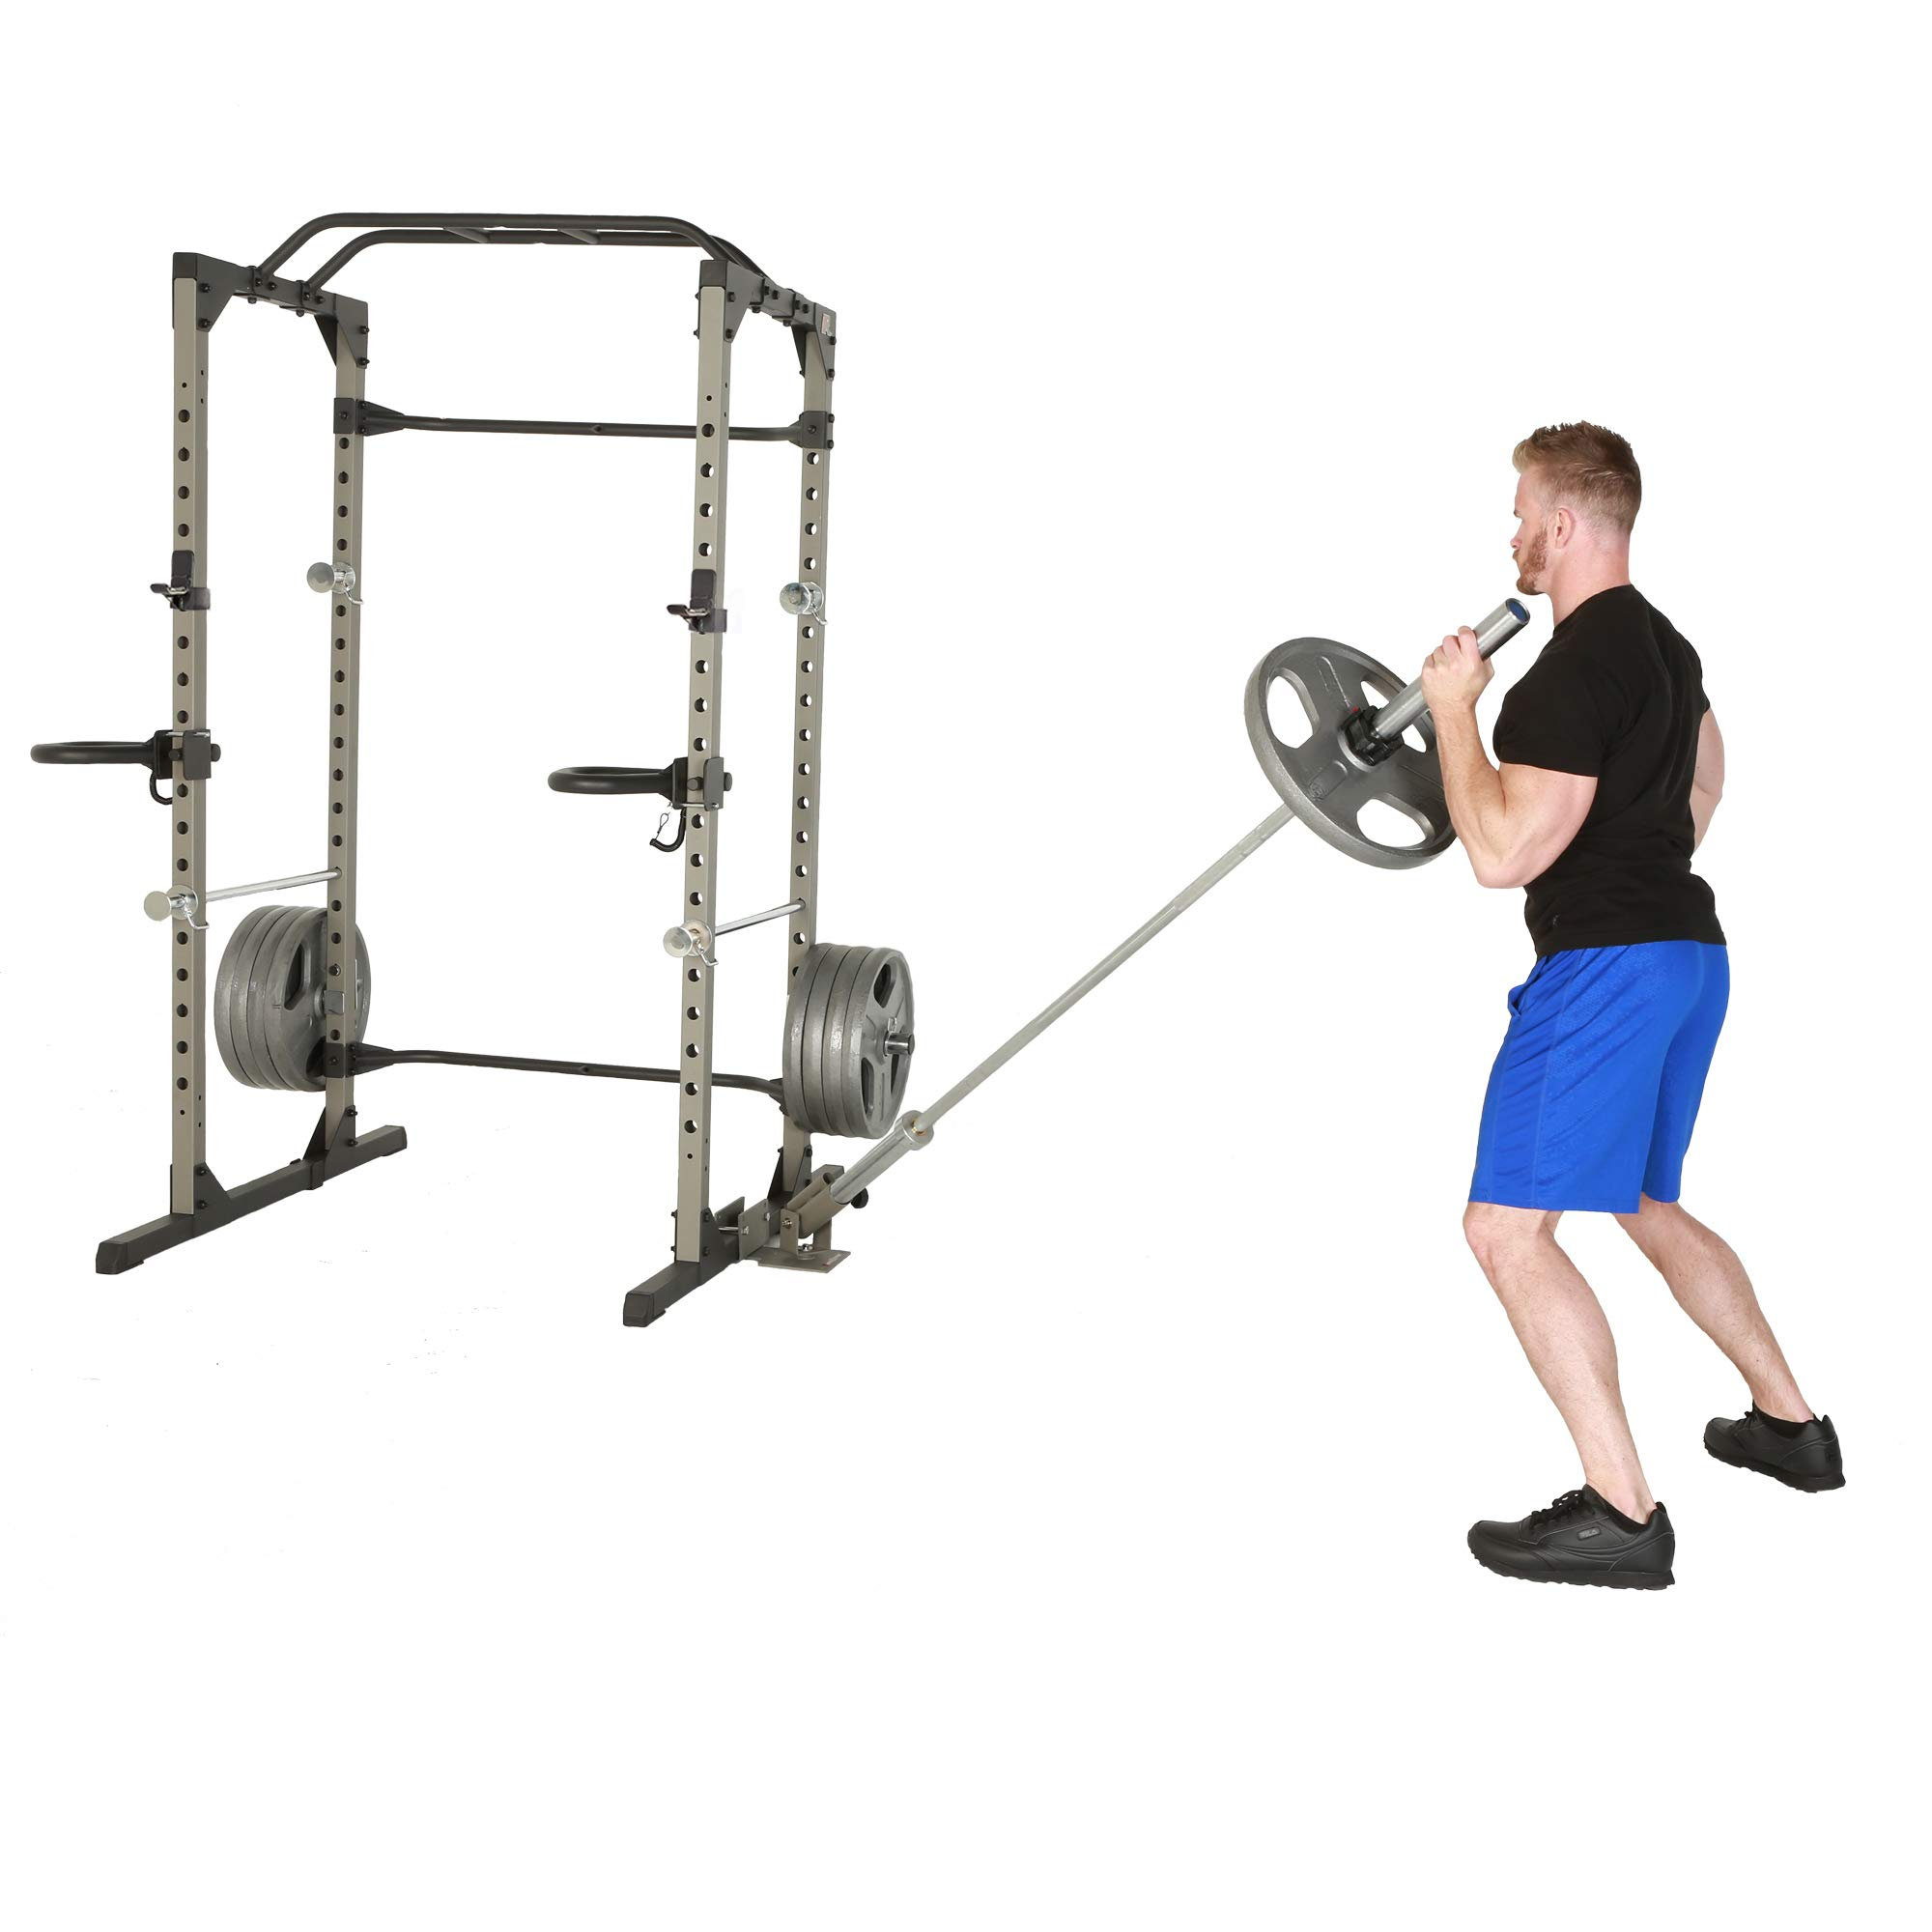 Fitness Reality 2819 Attachment Set for 2''x2'' Steel Tubing Power Cages by Fitness Reality (Image #15)